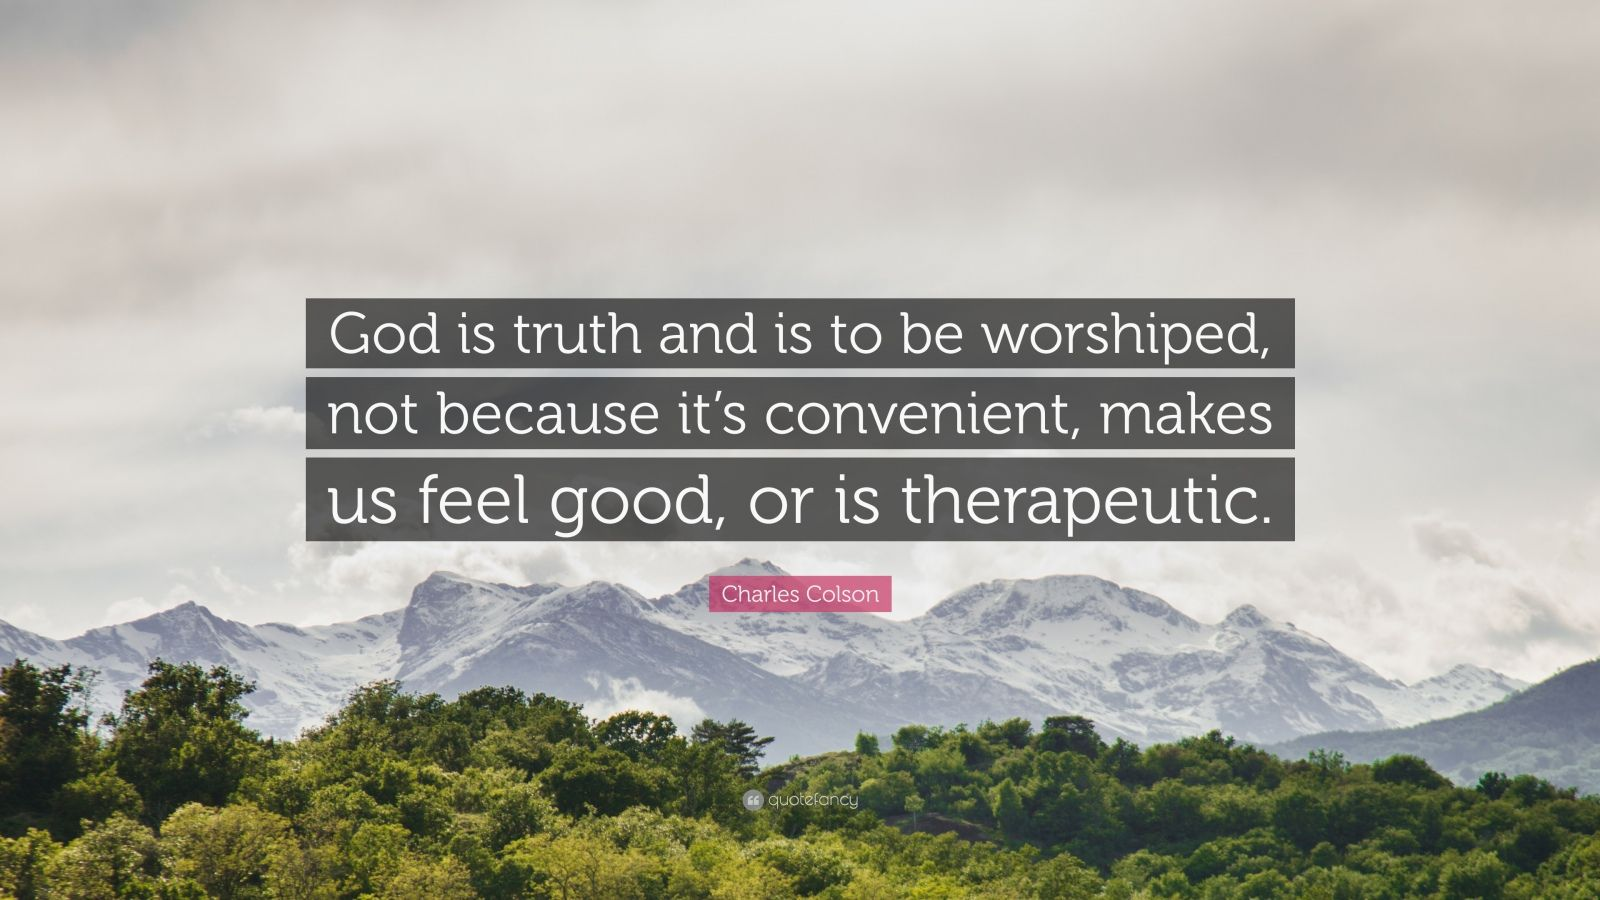 """Charles Colson Quote: """"God is truth and is to be worshiped, not because it's convenient, makes us feel good, or is therapeutic."""""""